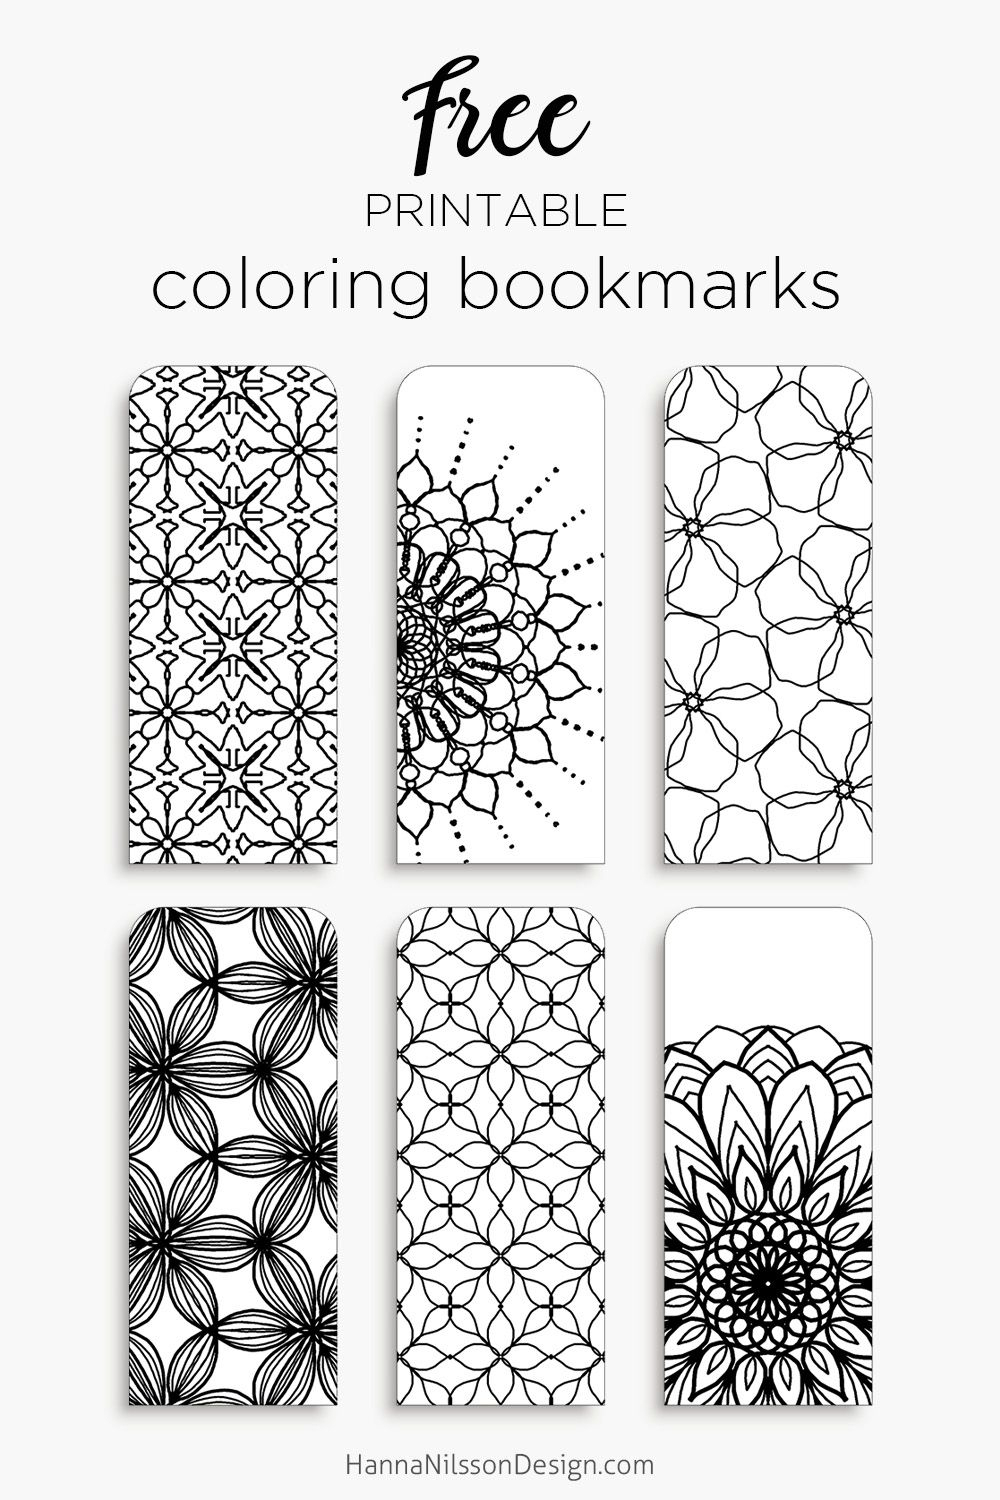 Coloring Bookmarks – Print, Color And Read | Hanna Nilsson Design - Free Printable Blank Bookmarks